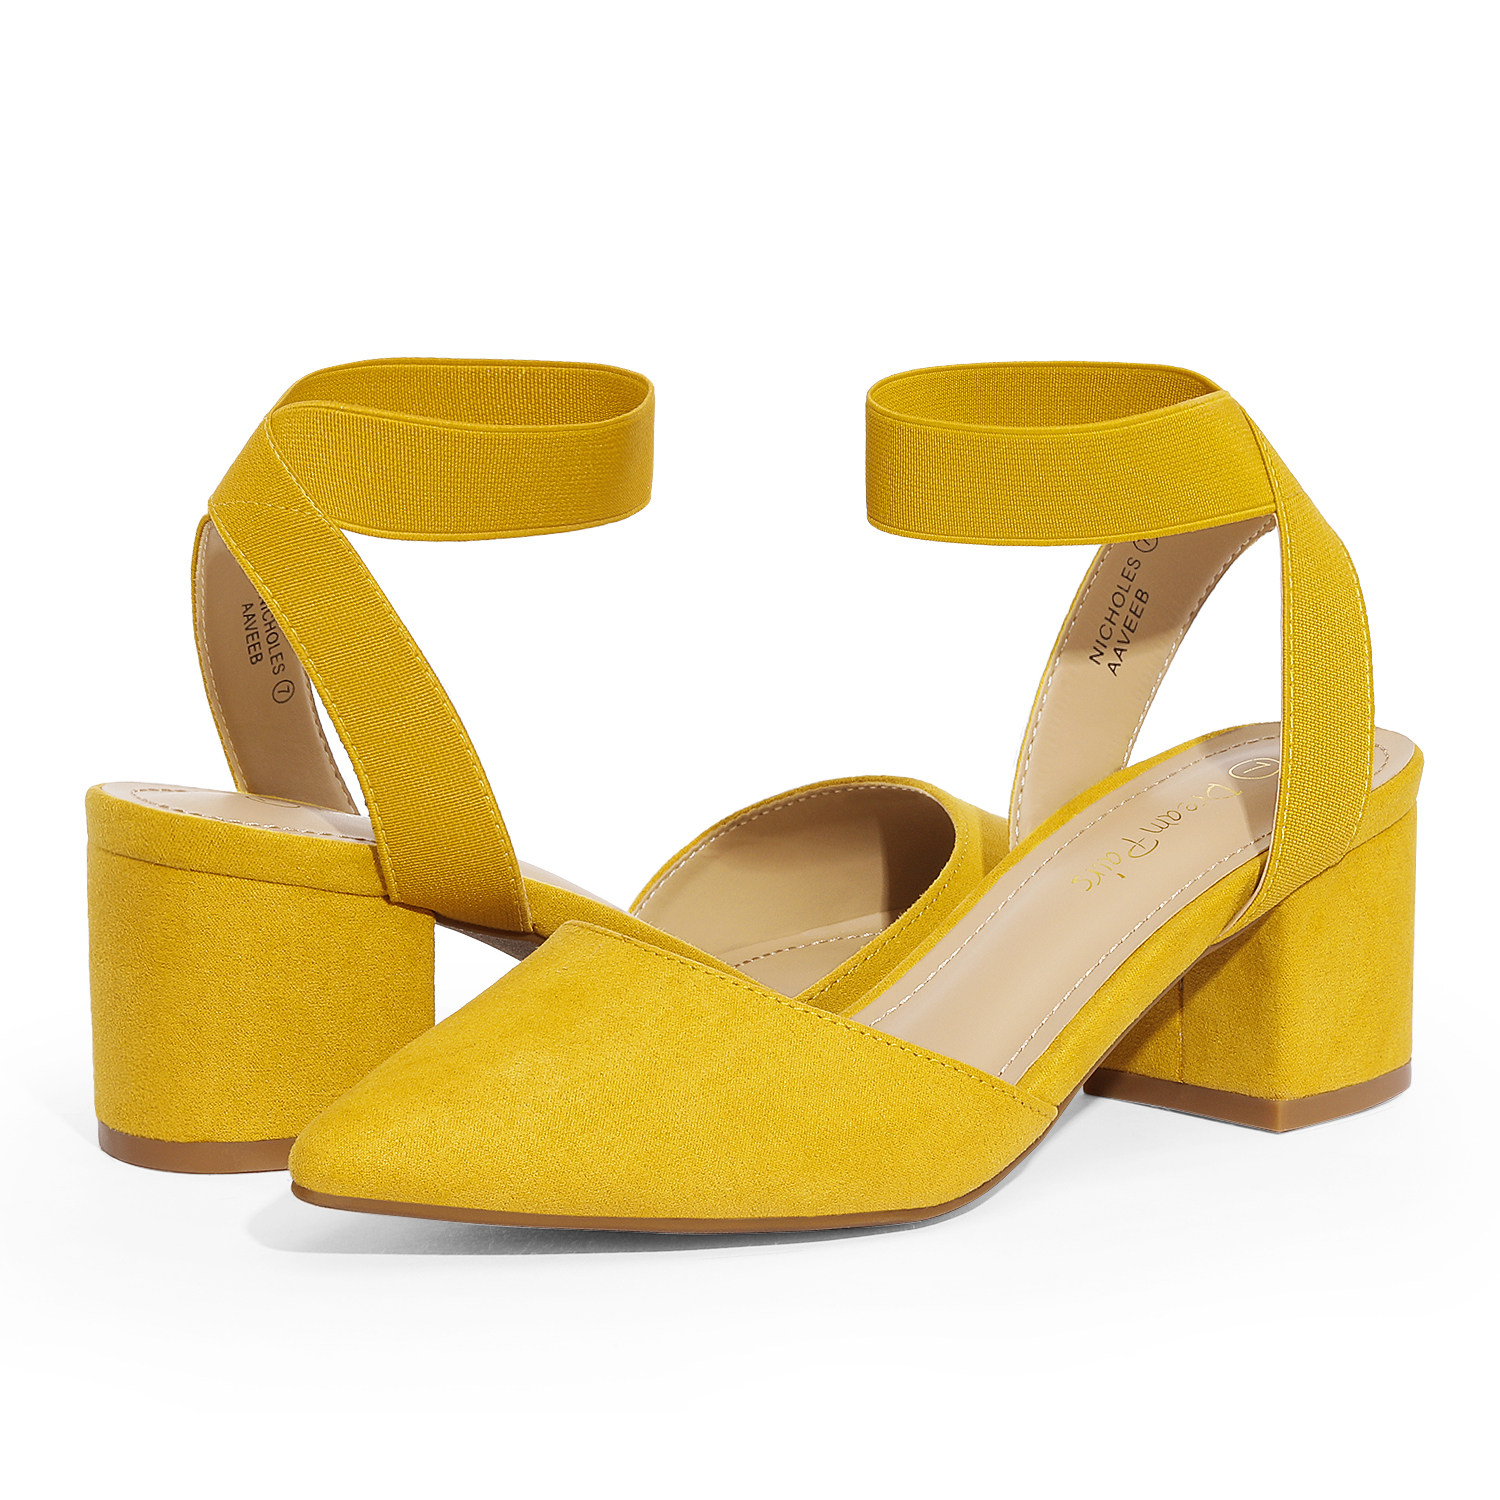 thumbnail 39 - Women-039-s-Elastic-Ankle-Strap-Pointed-Toe-Pump-Shoes-Low-Chunky-Heel-Dress-Pumps